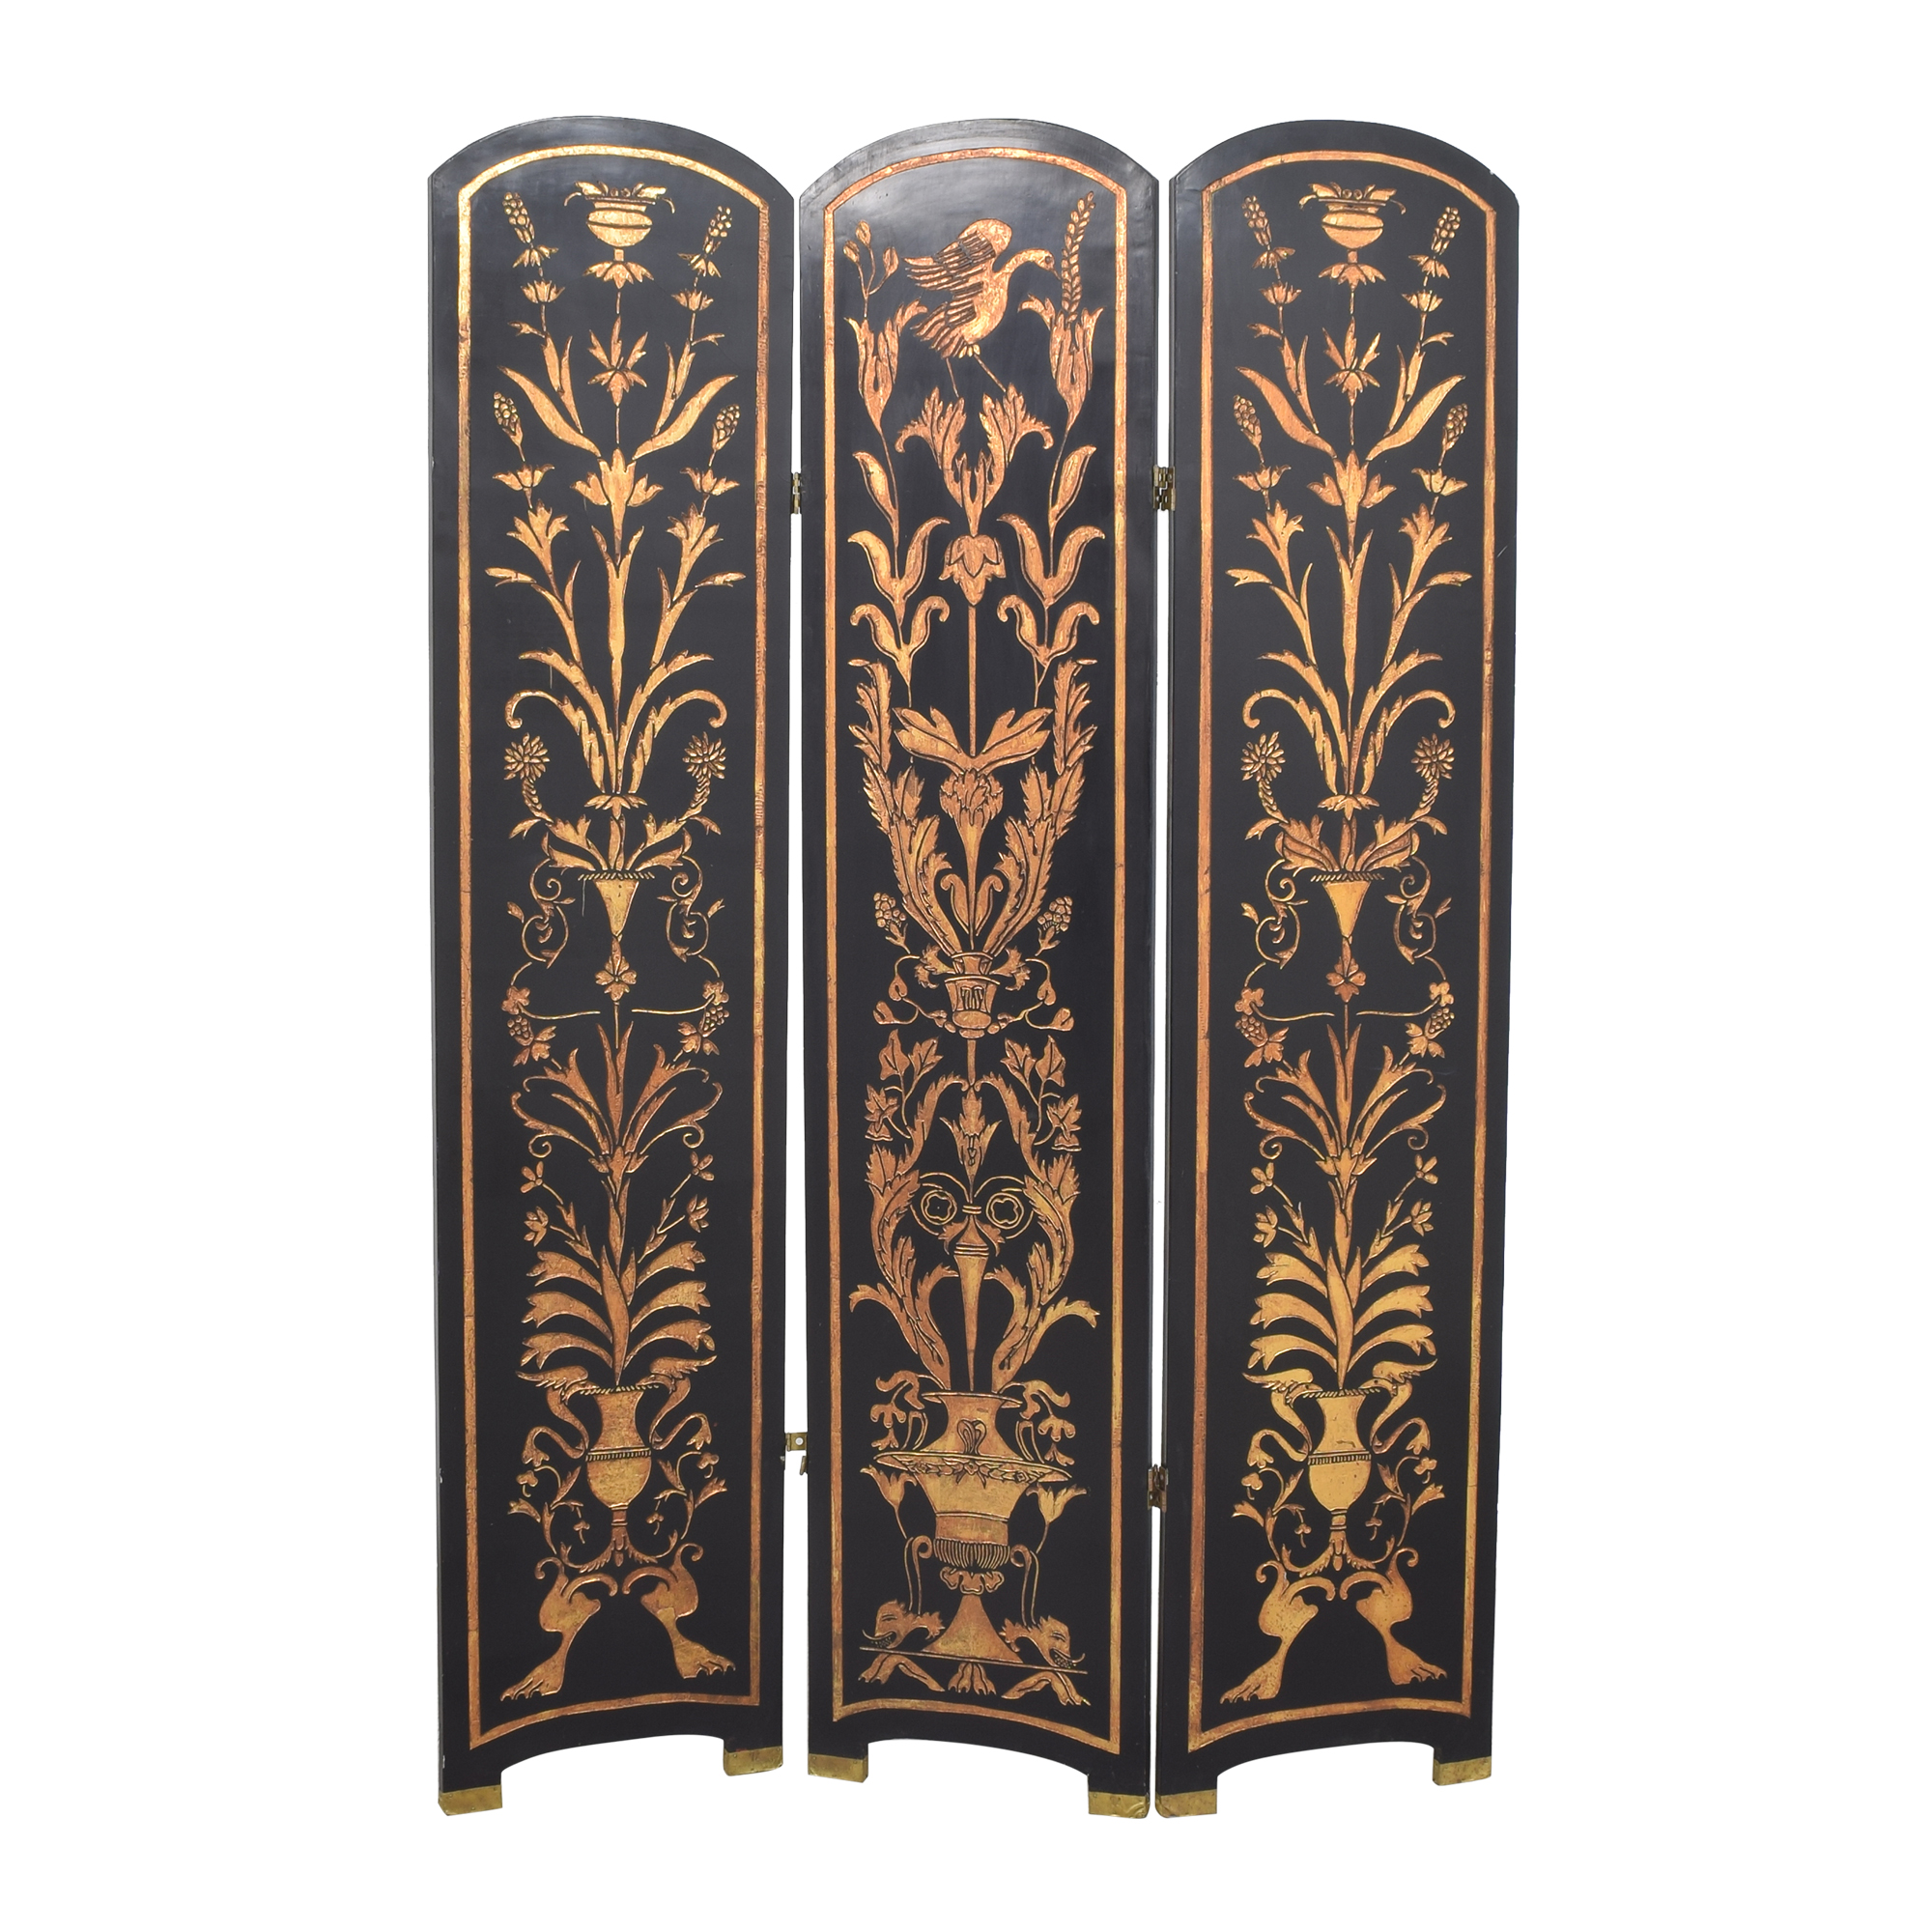 Vintage Three Panel Folding Screen / Dividers